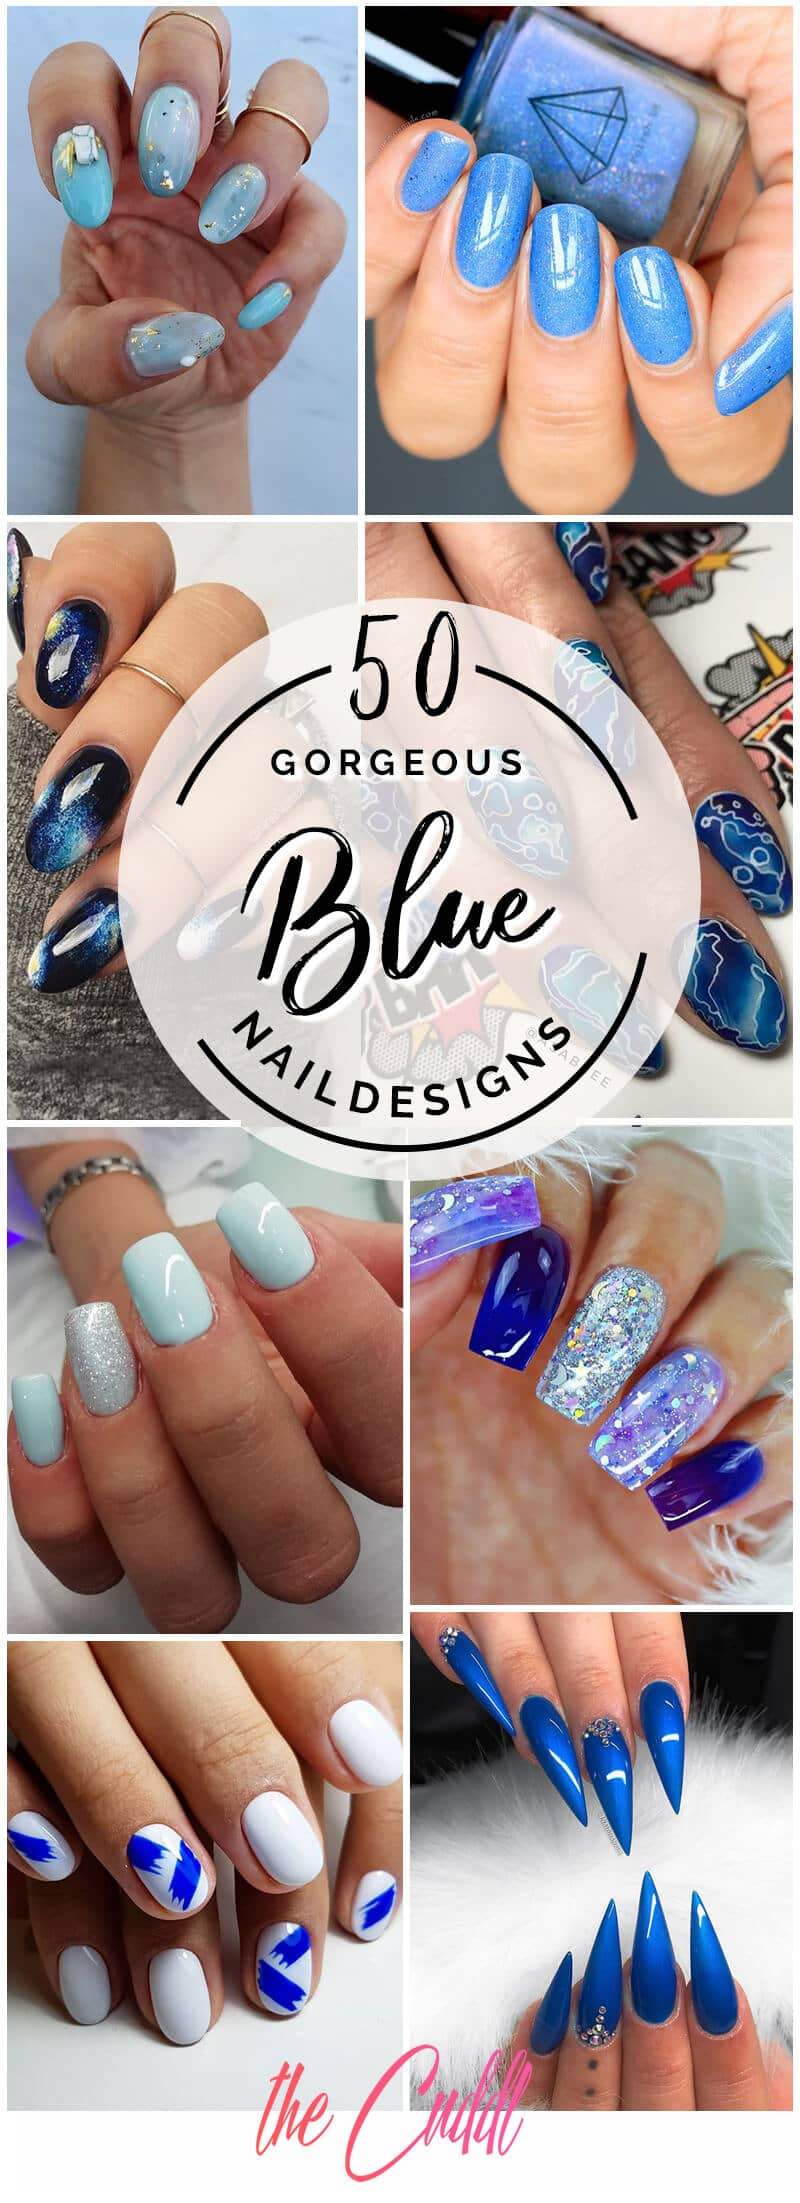 50 Stunning Blue Nail Designs for a Bold and Beautiful Look